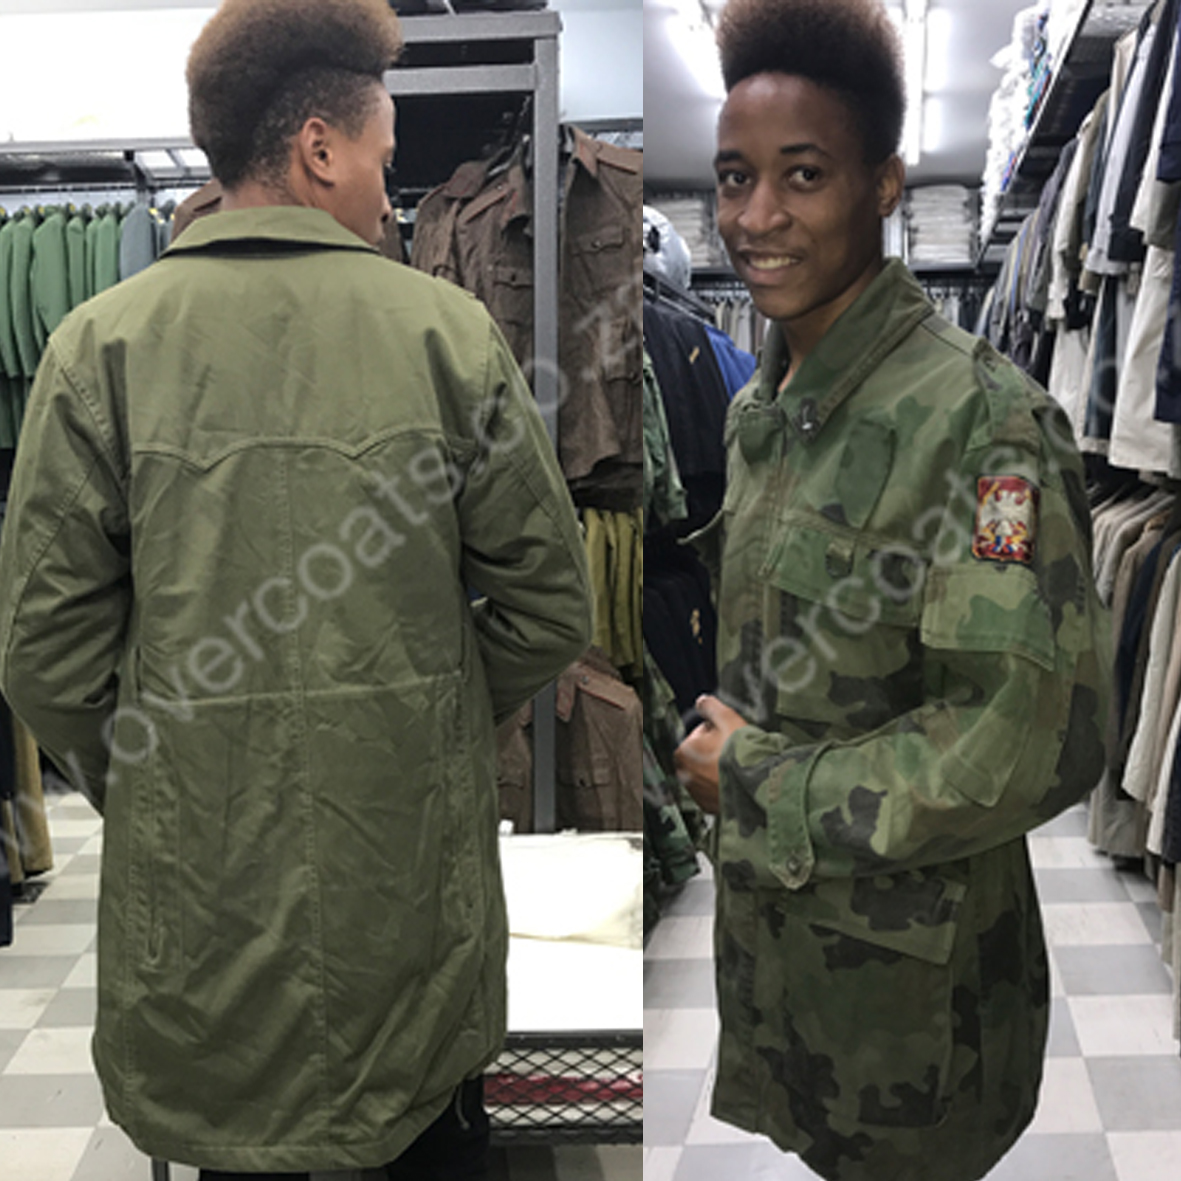 Army Clothes Near Me « Alzheimer's Network of Oregon